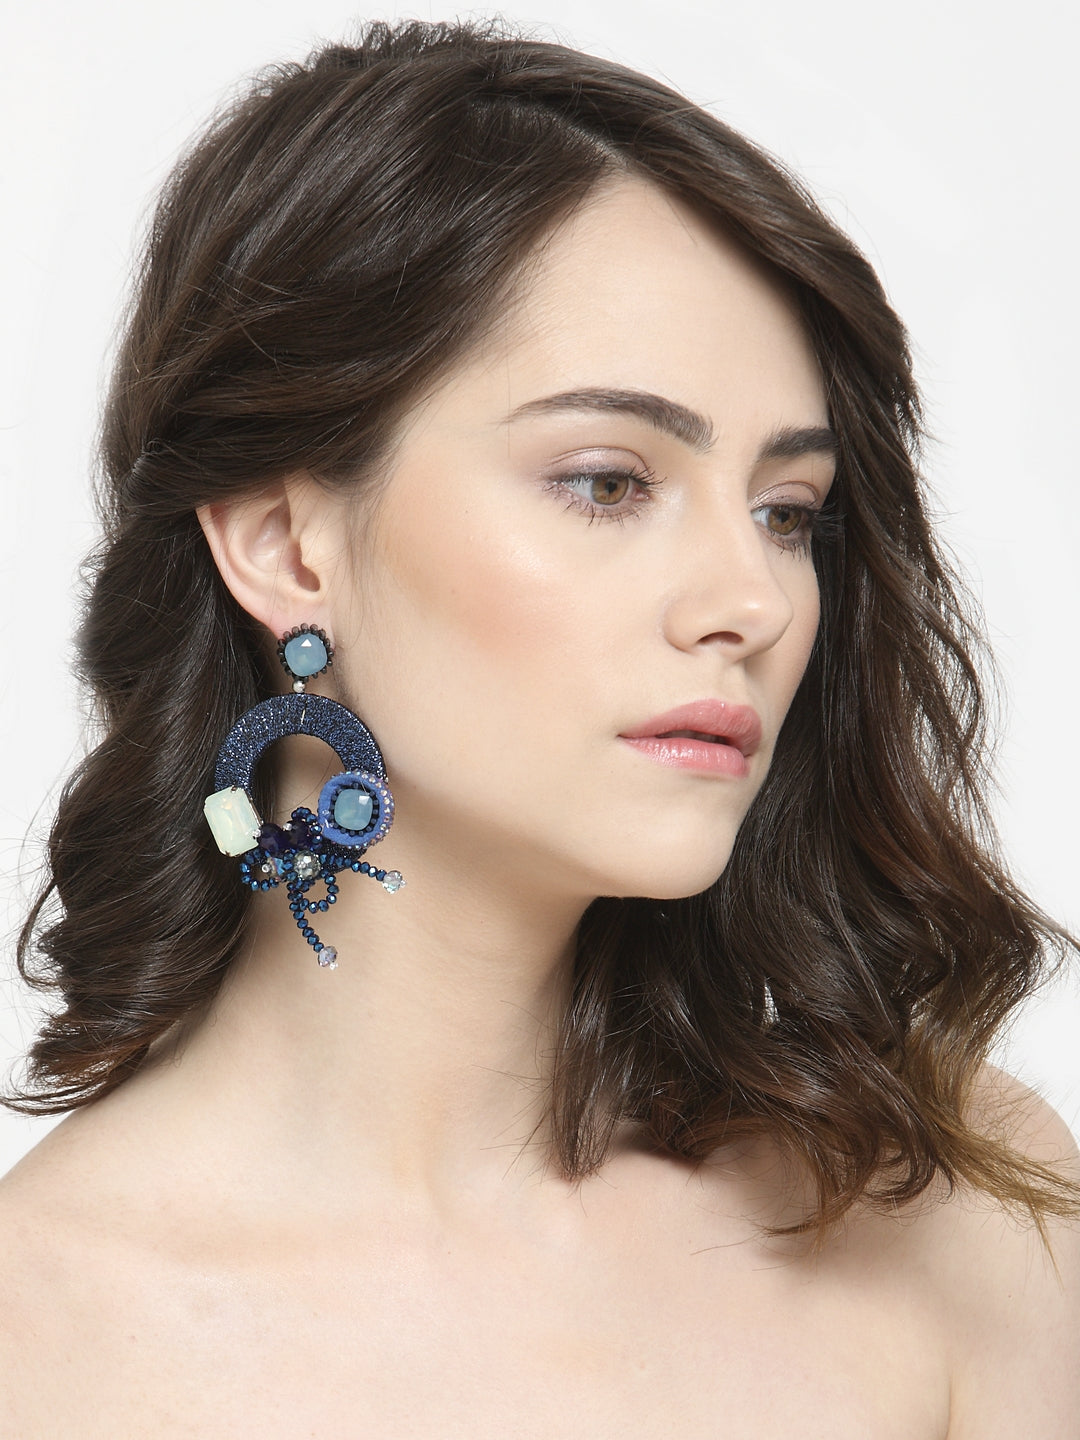 Avant-Garde Paris Round Shape Flower Fashion Crystal Hoop Earrings